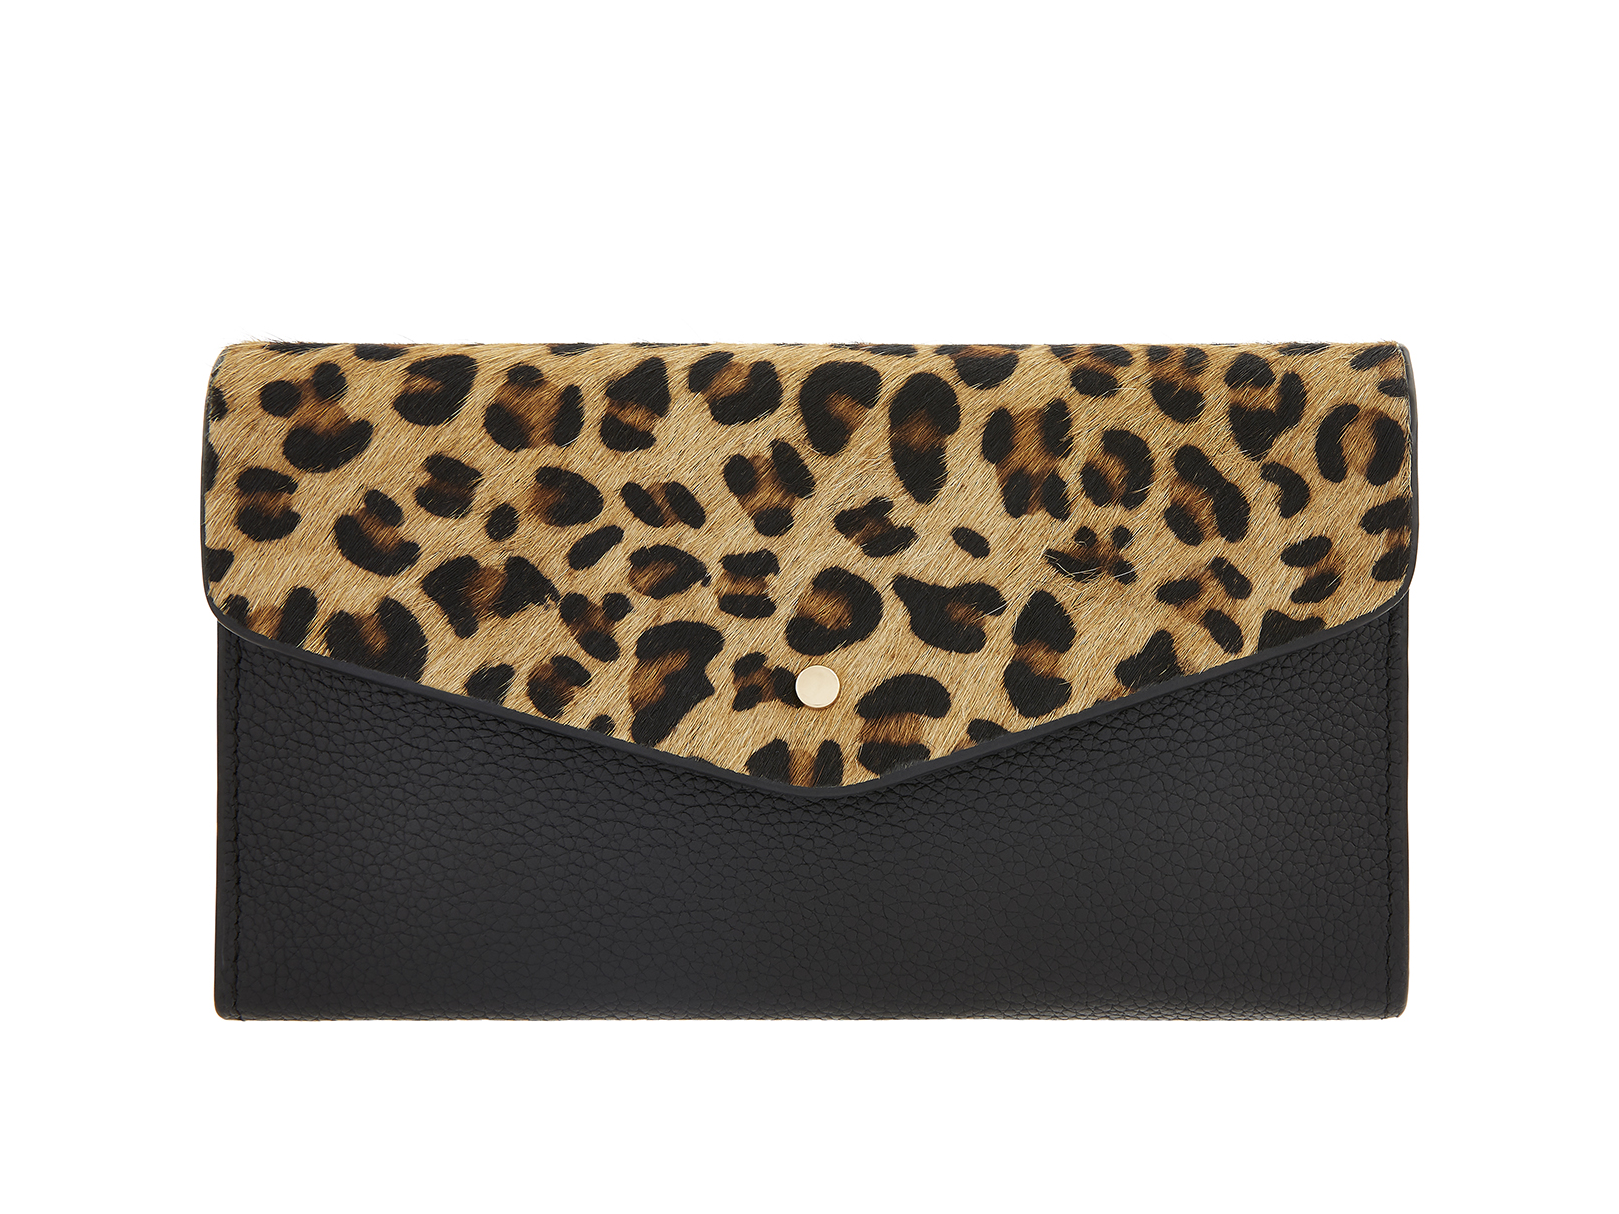 5d9b3a6f2d Best women's wallets, purses and cardholders with pockets, card ...